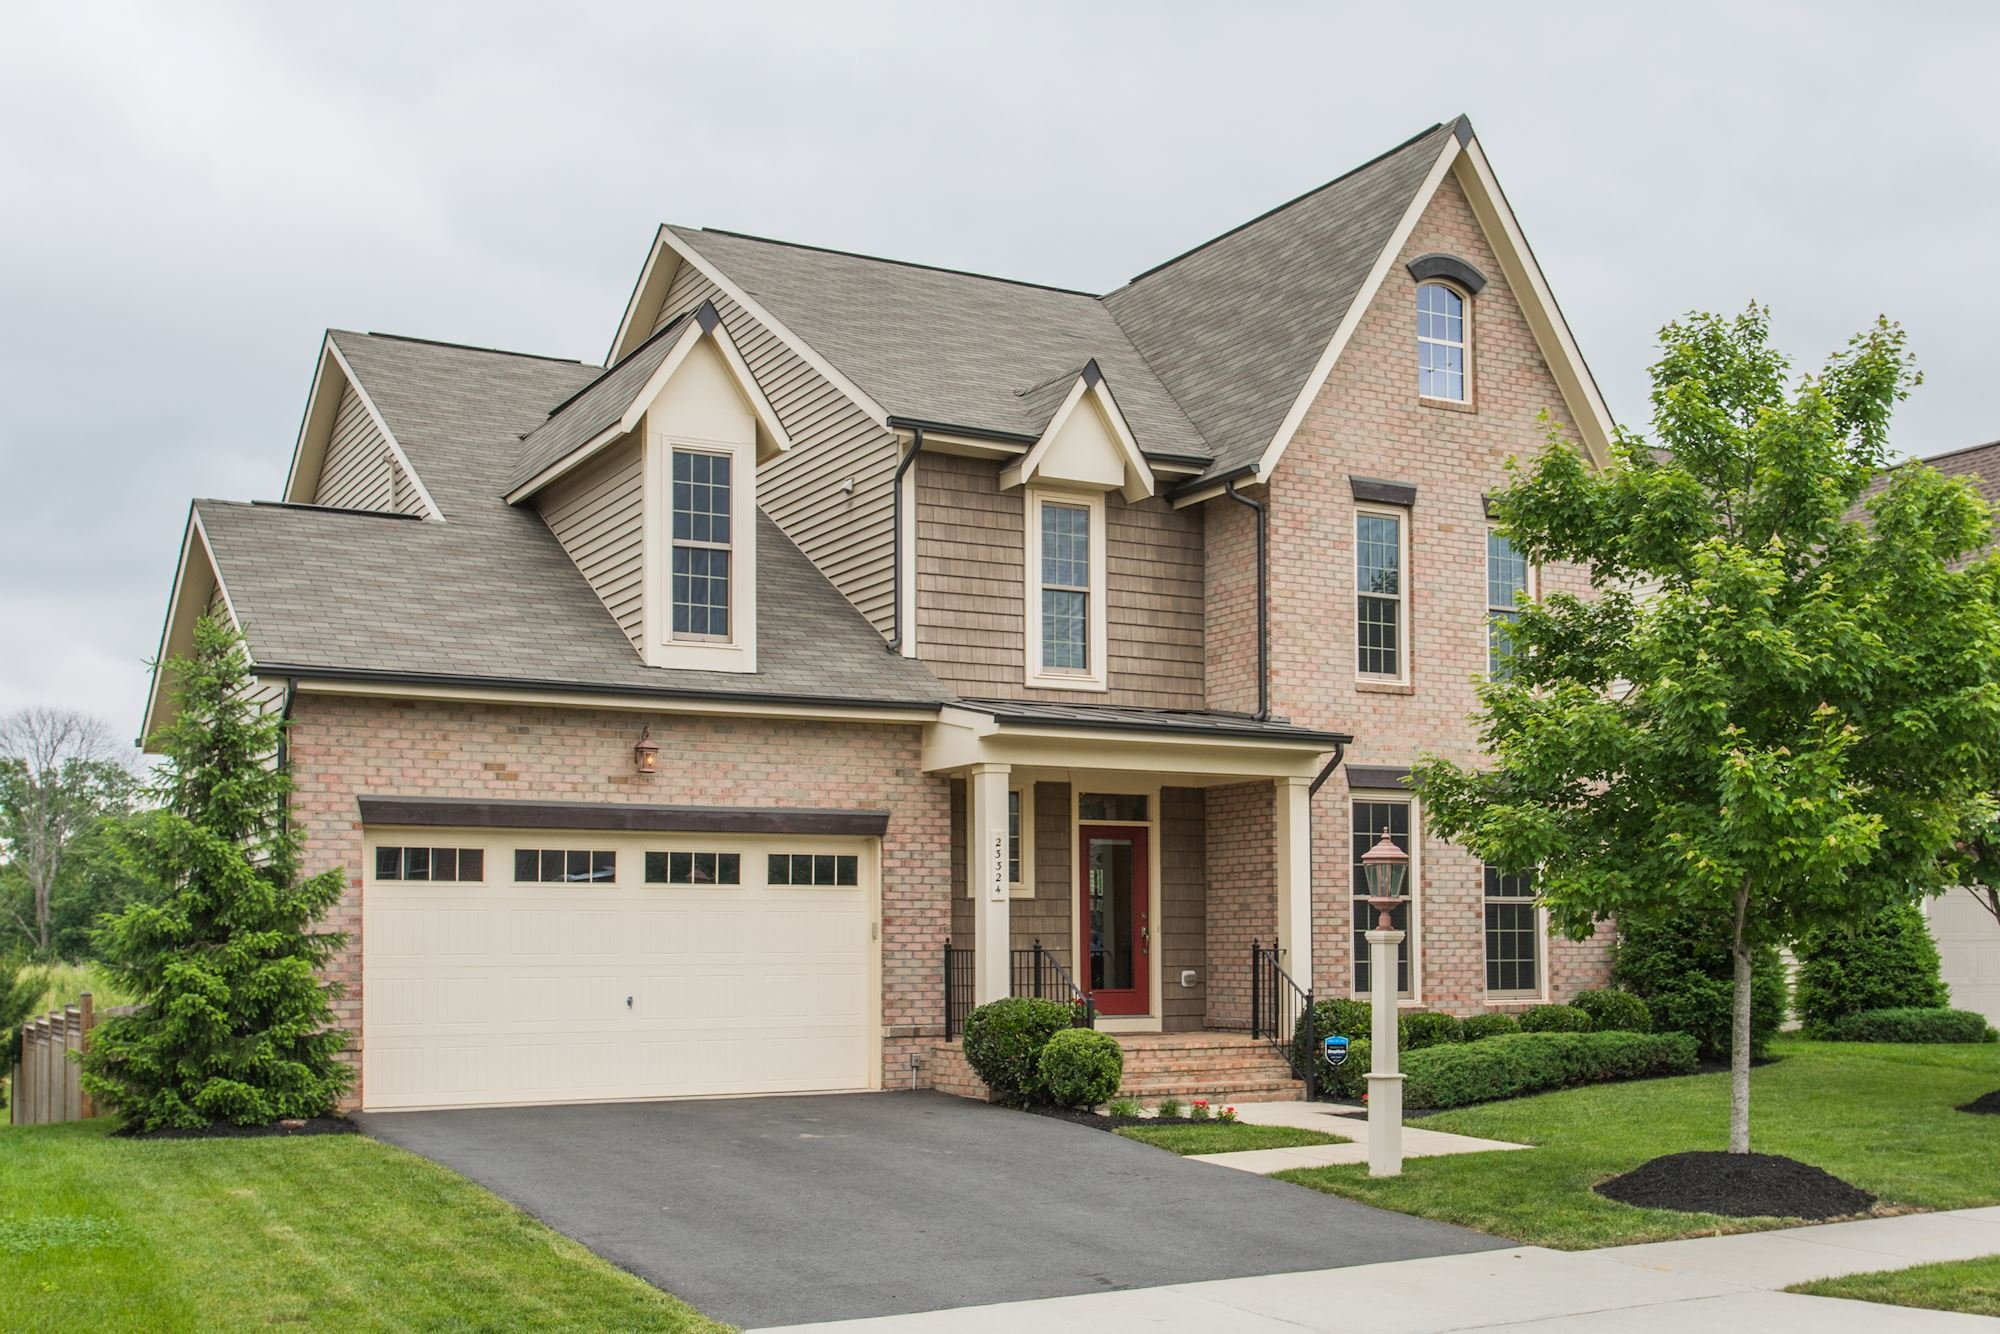 NEW LISTING: 4 BD Stunning Open Floor Plan Home in Ashburn